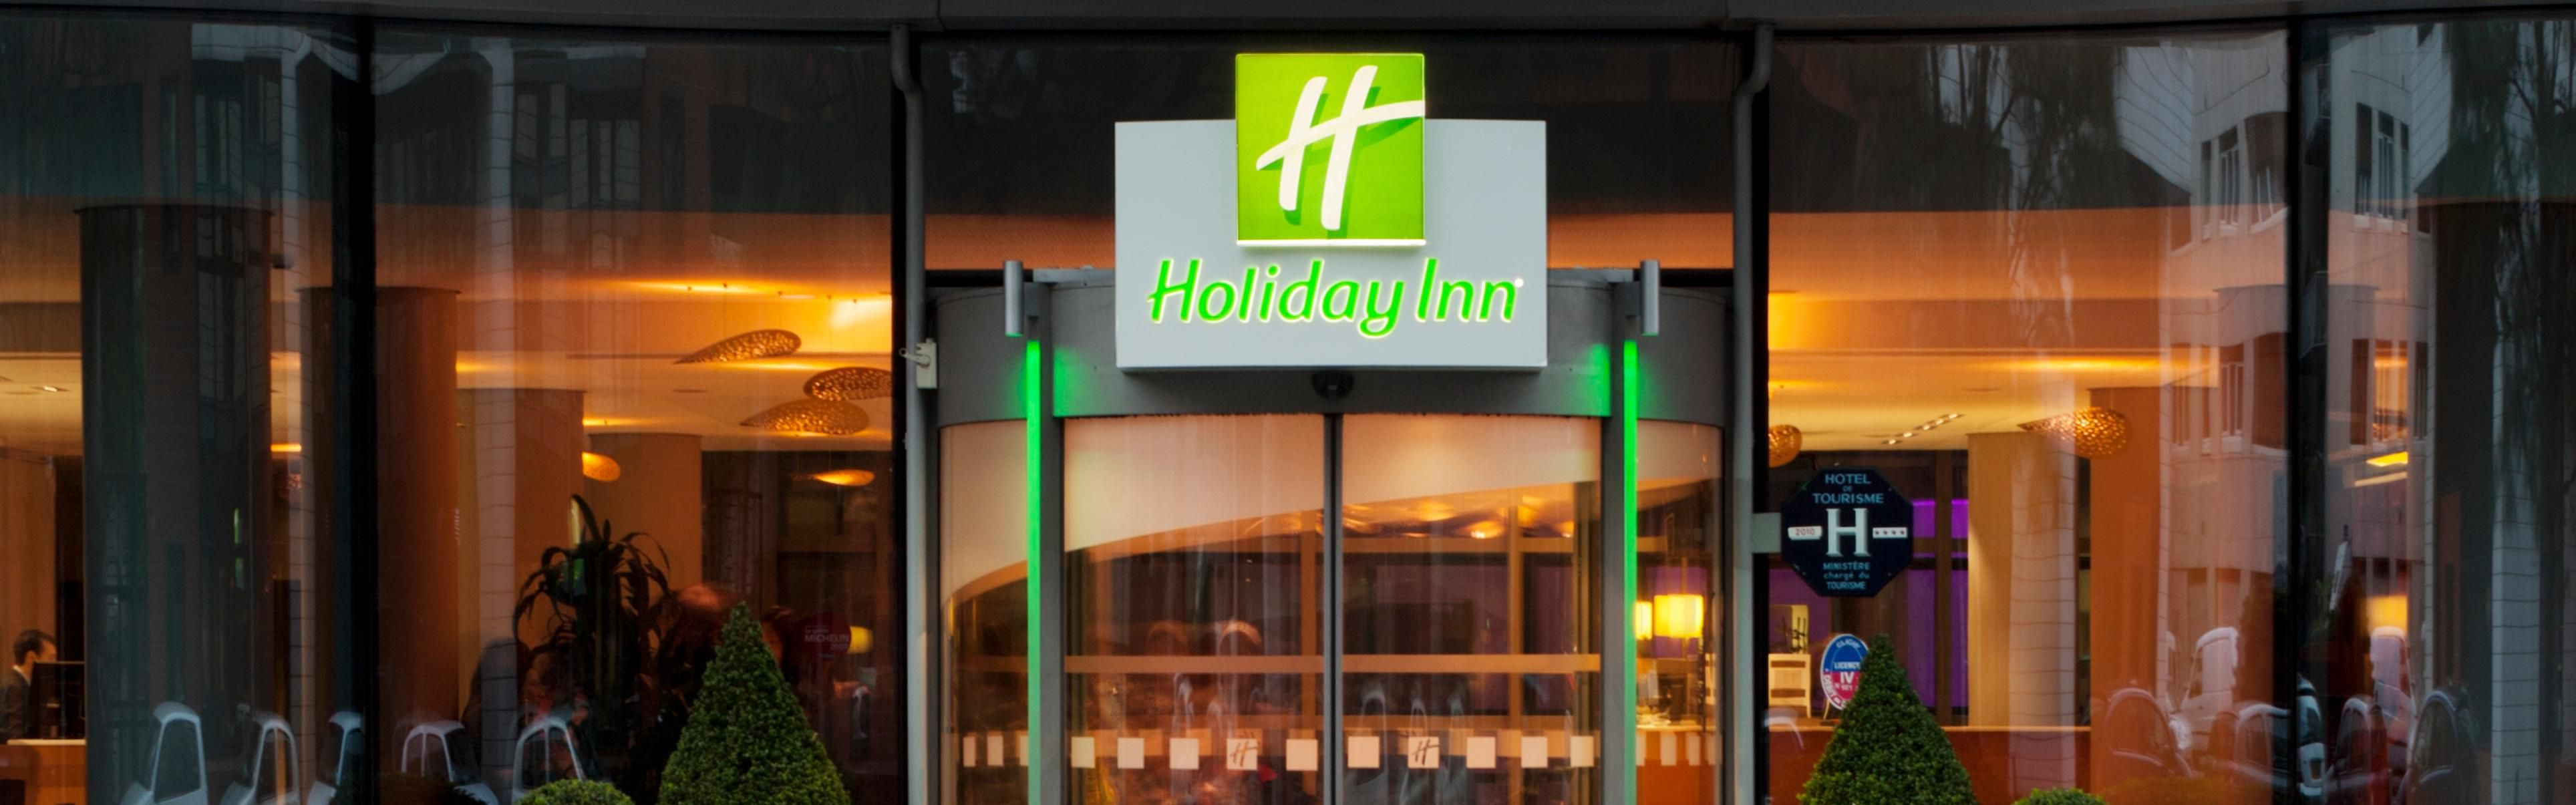 Hotel Ibis Porte De Clichy North Paris Hotels Holiday Inn Paris Porte De Clichy